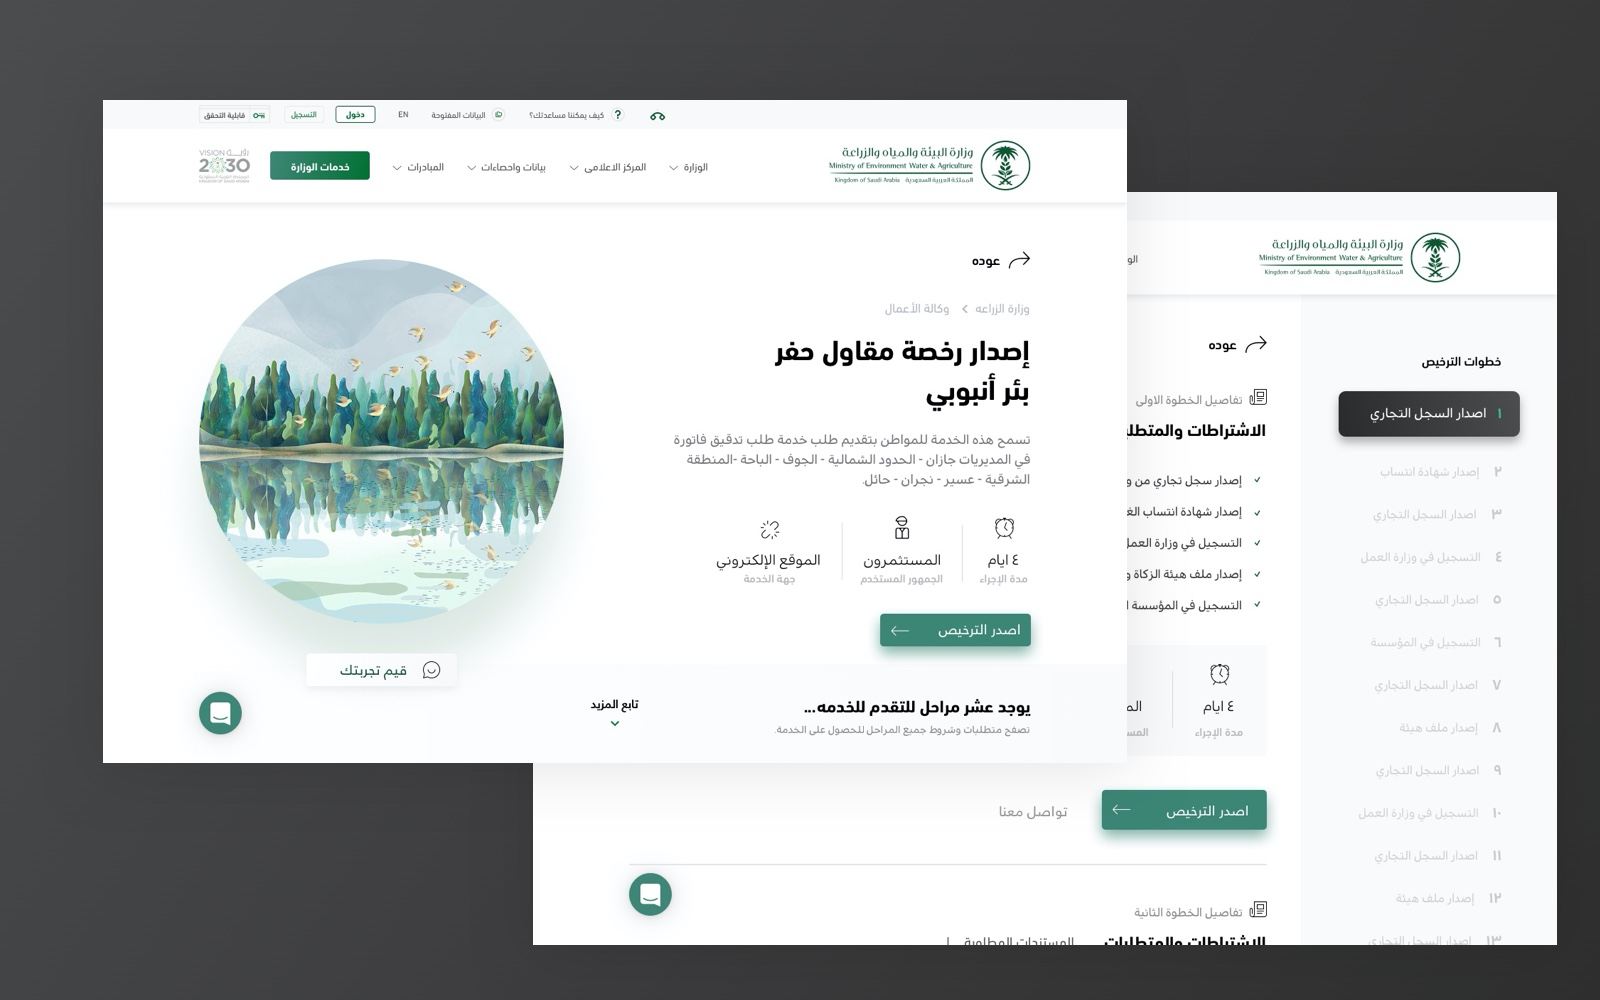 KSA-Ministry-of-Agriculture-3